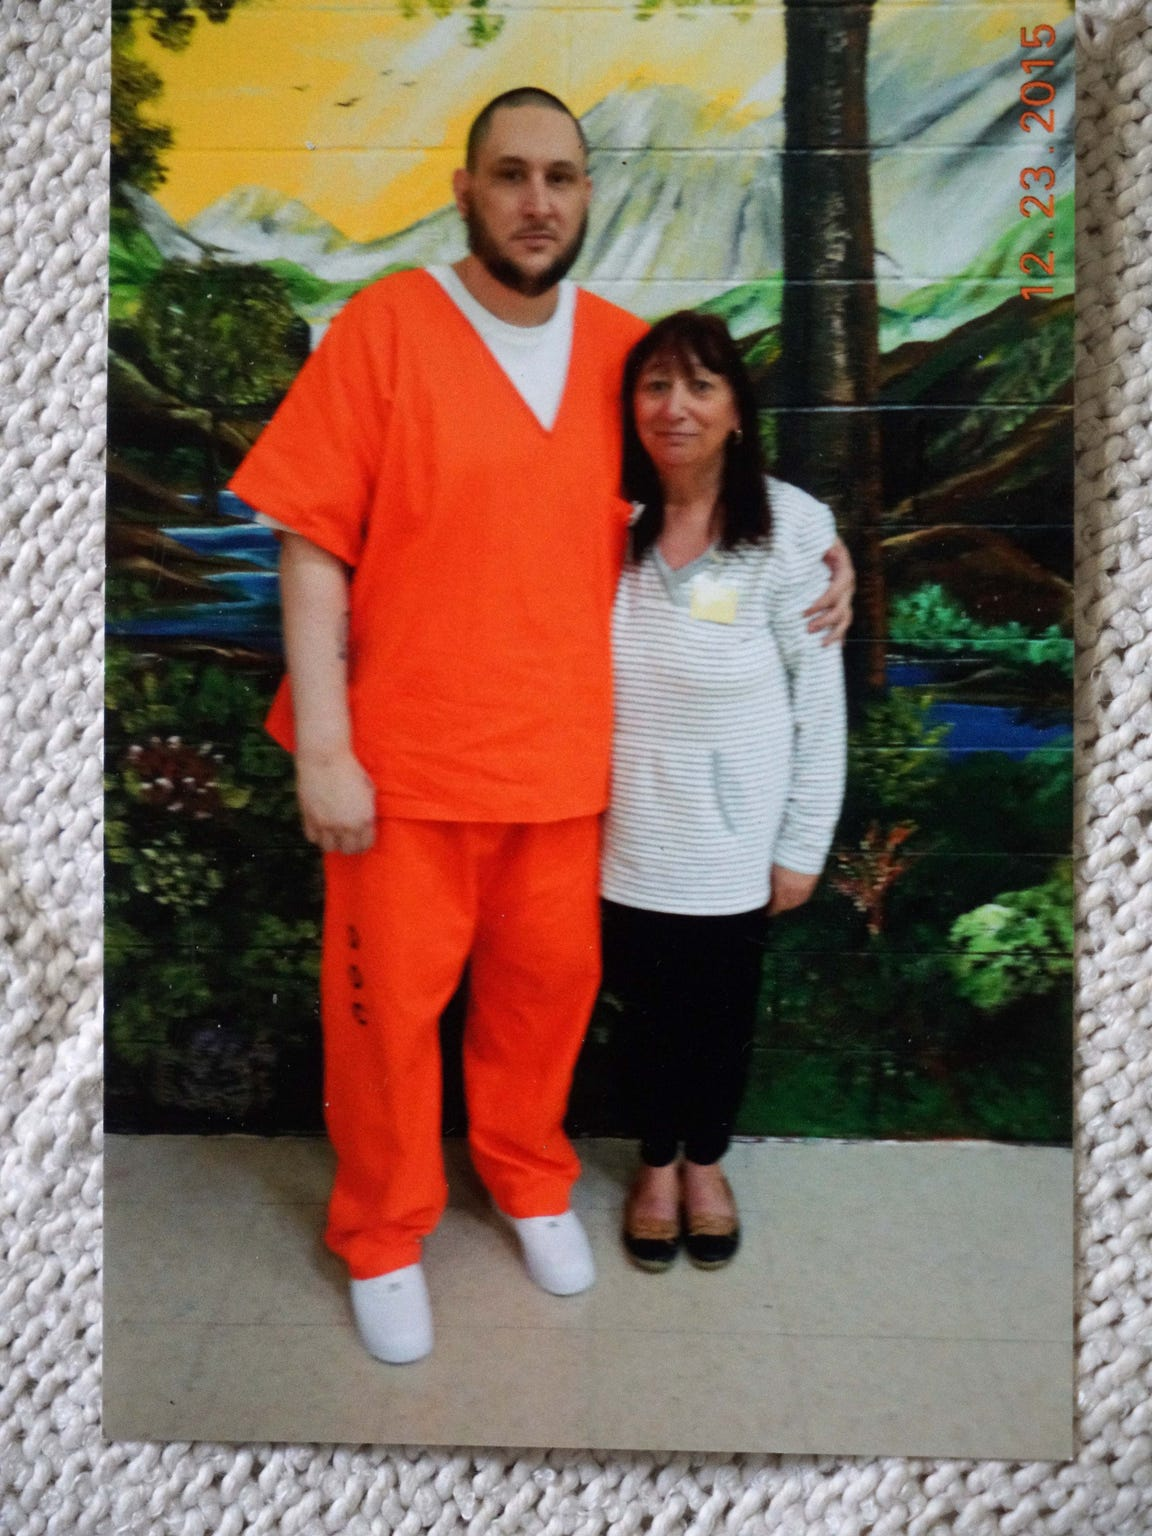 Debbie Szubielsk and her 40-year-old son Gerard Szubielski are shown. He is incarcerated at the James T. Vaughn Correctional Center.